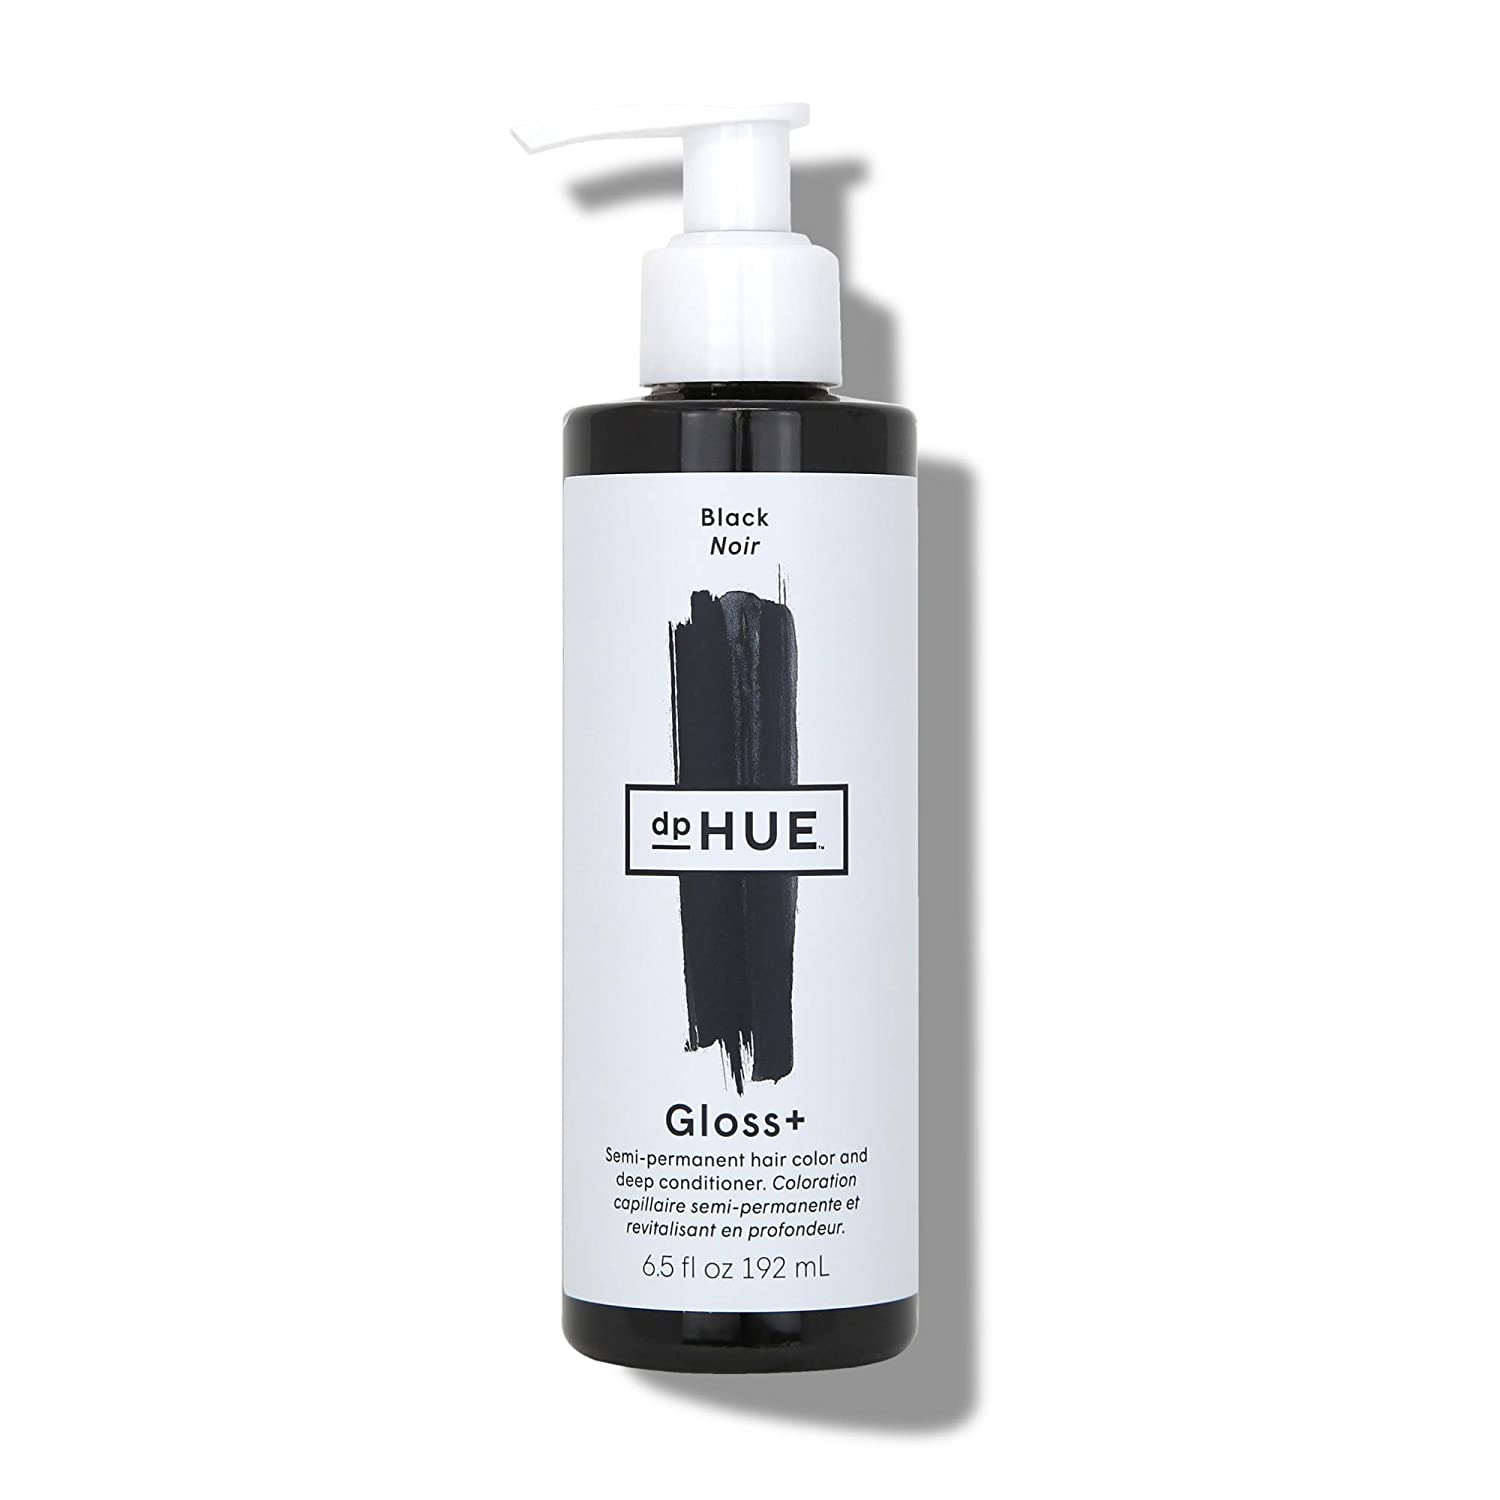 dpHUE Gloss+ - Black, 6.5 oz - Color-Boosting Semi-Permanent Hair Dye & Deep Conditioner - Enhance & Deepen Natural or Color-Treated Hair - Gluten-Free, Vegan